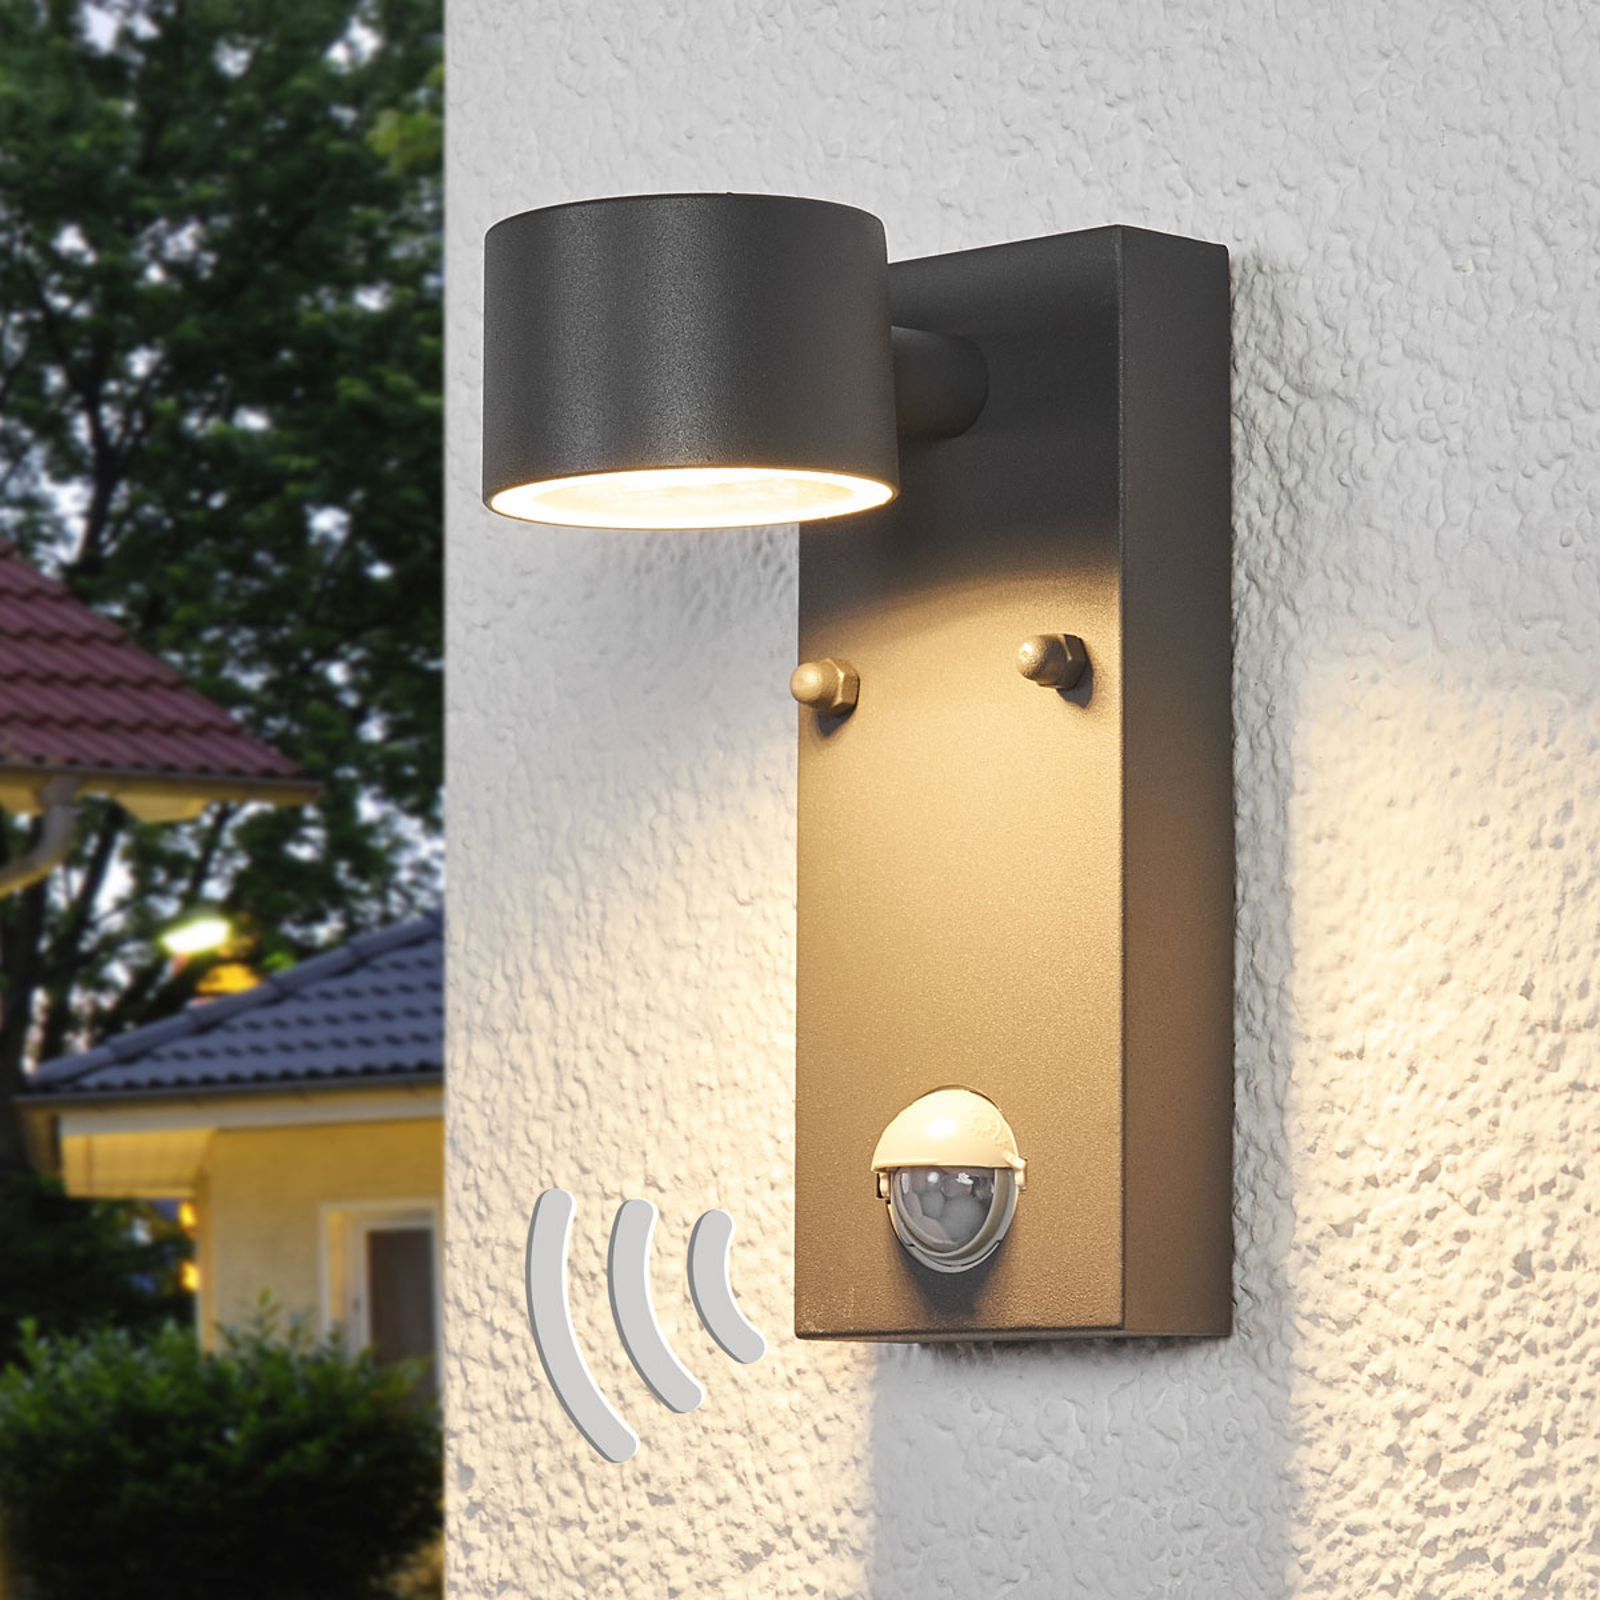 Outdoor LED wall light Lexi with a sensor_9977002_1